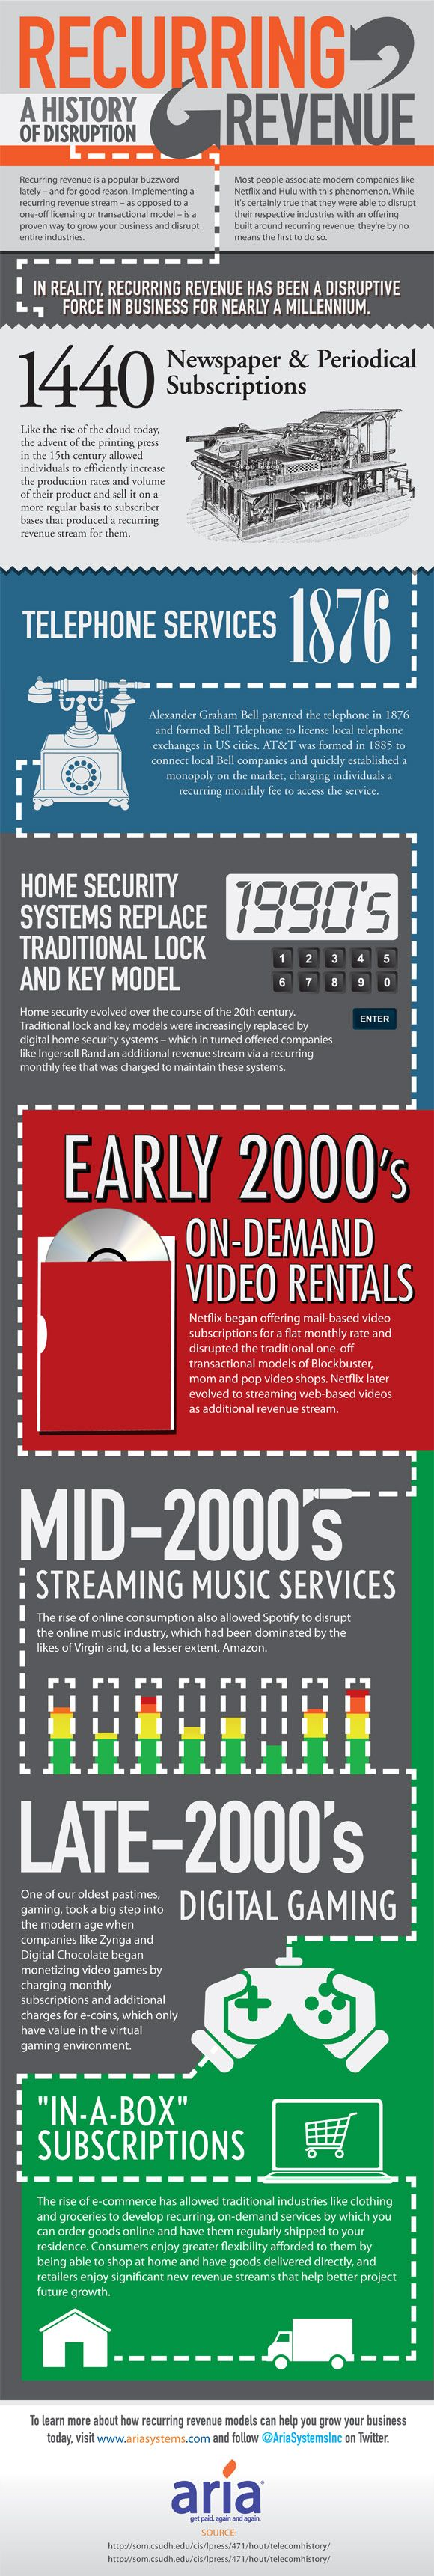 550 years of the recurring revenue model (infographic)    Read more at http://venturebeat.com/2012/10/09/550-years-of-the-recurring-revenue-model-infographic/#VlV4gST2slEWGgsI.99